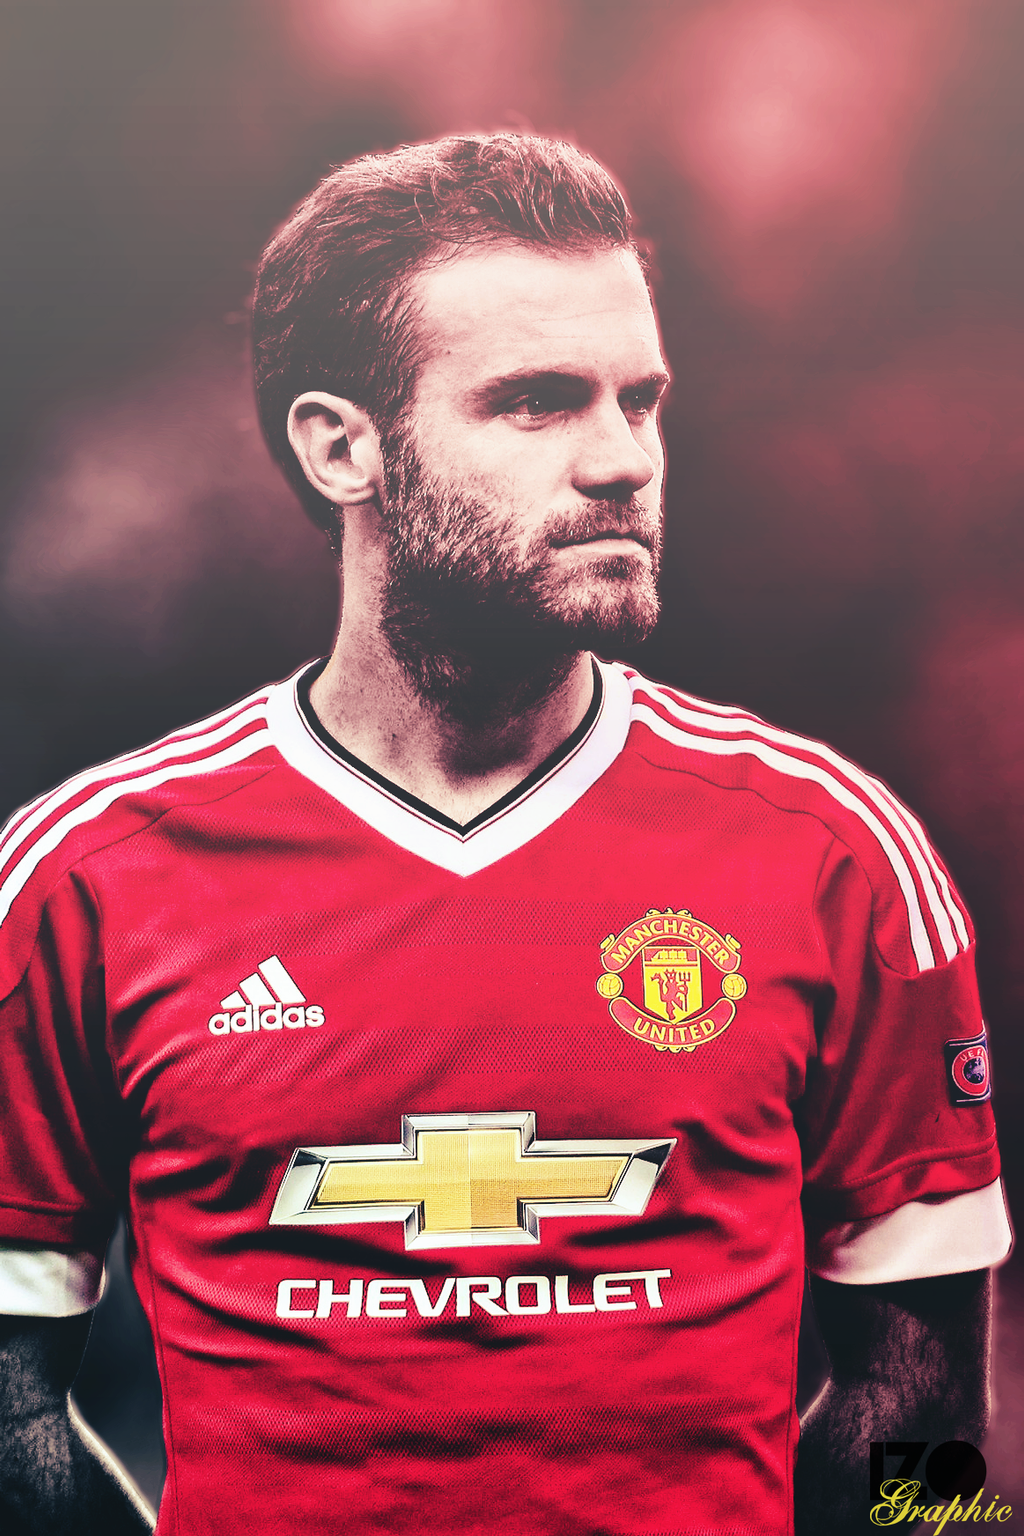 Juan Mata Manchester United Effect by izographic on DeviantArt